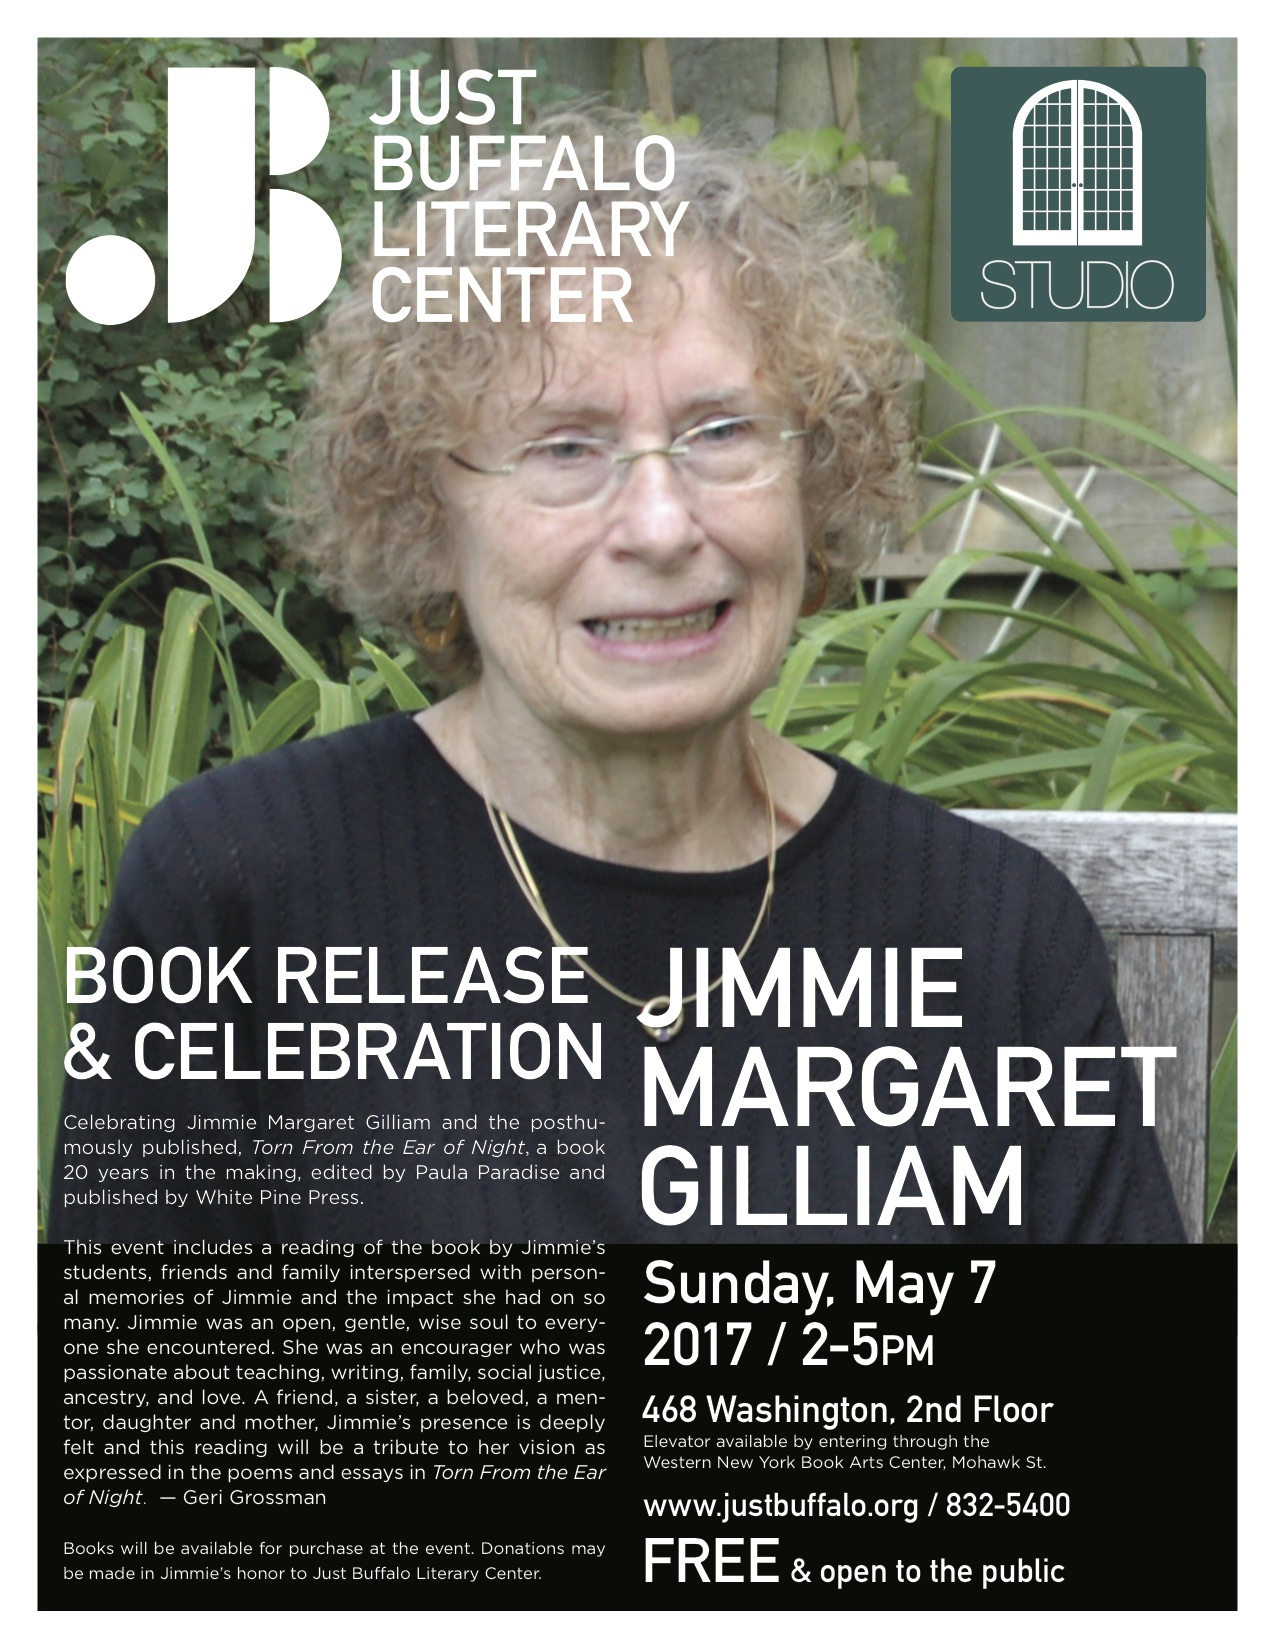 Jimmie Margaret Gilliam book release & celebration